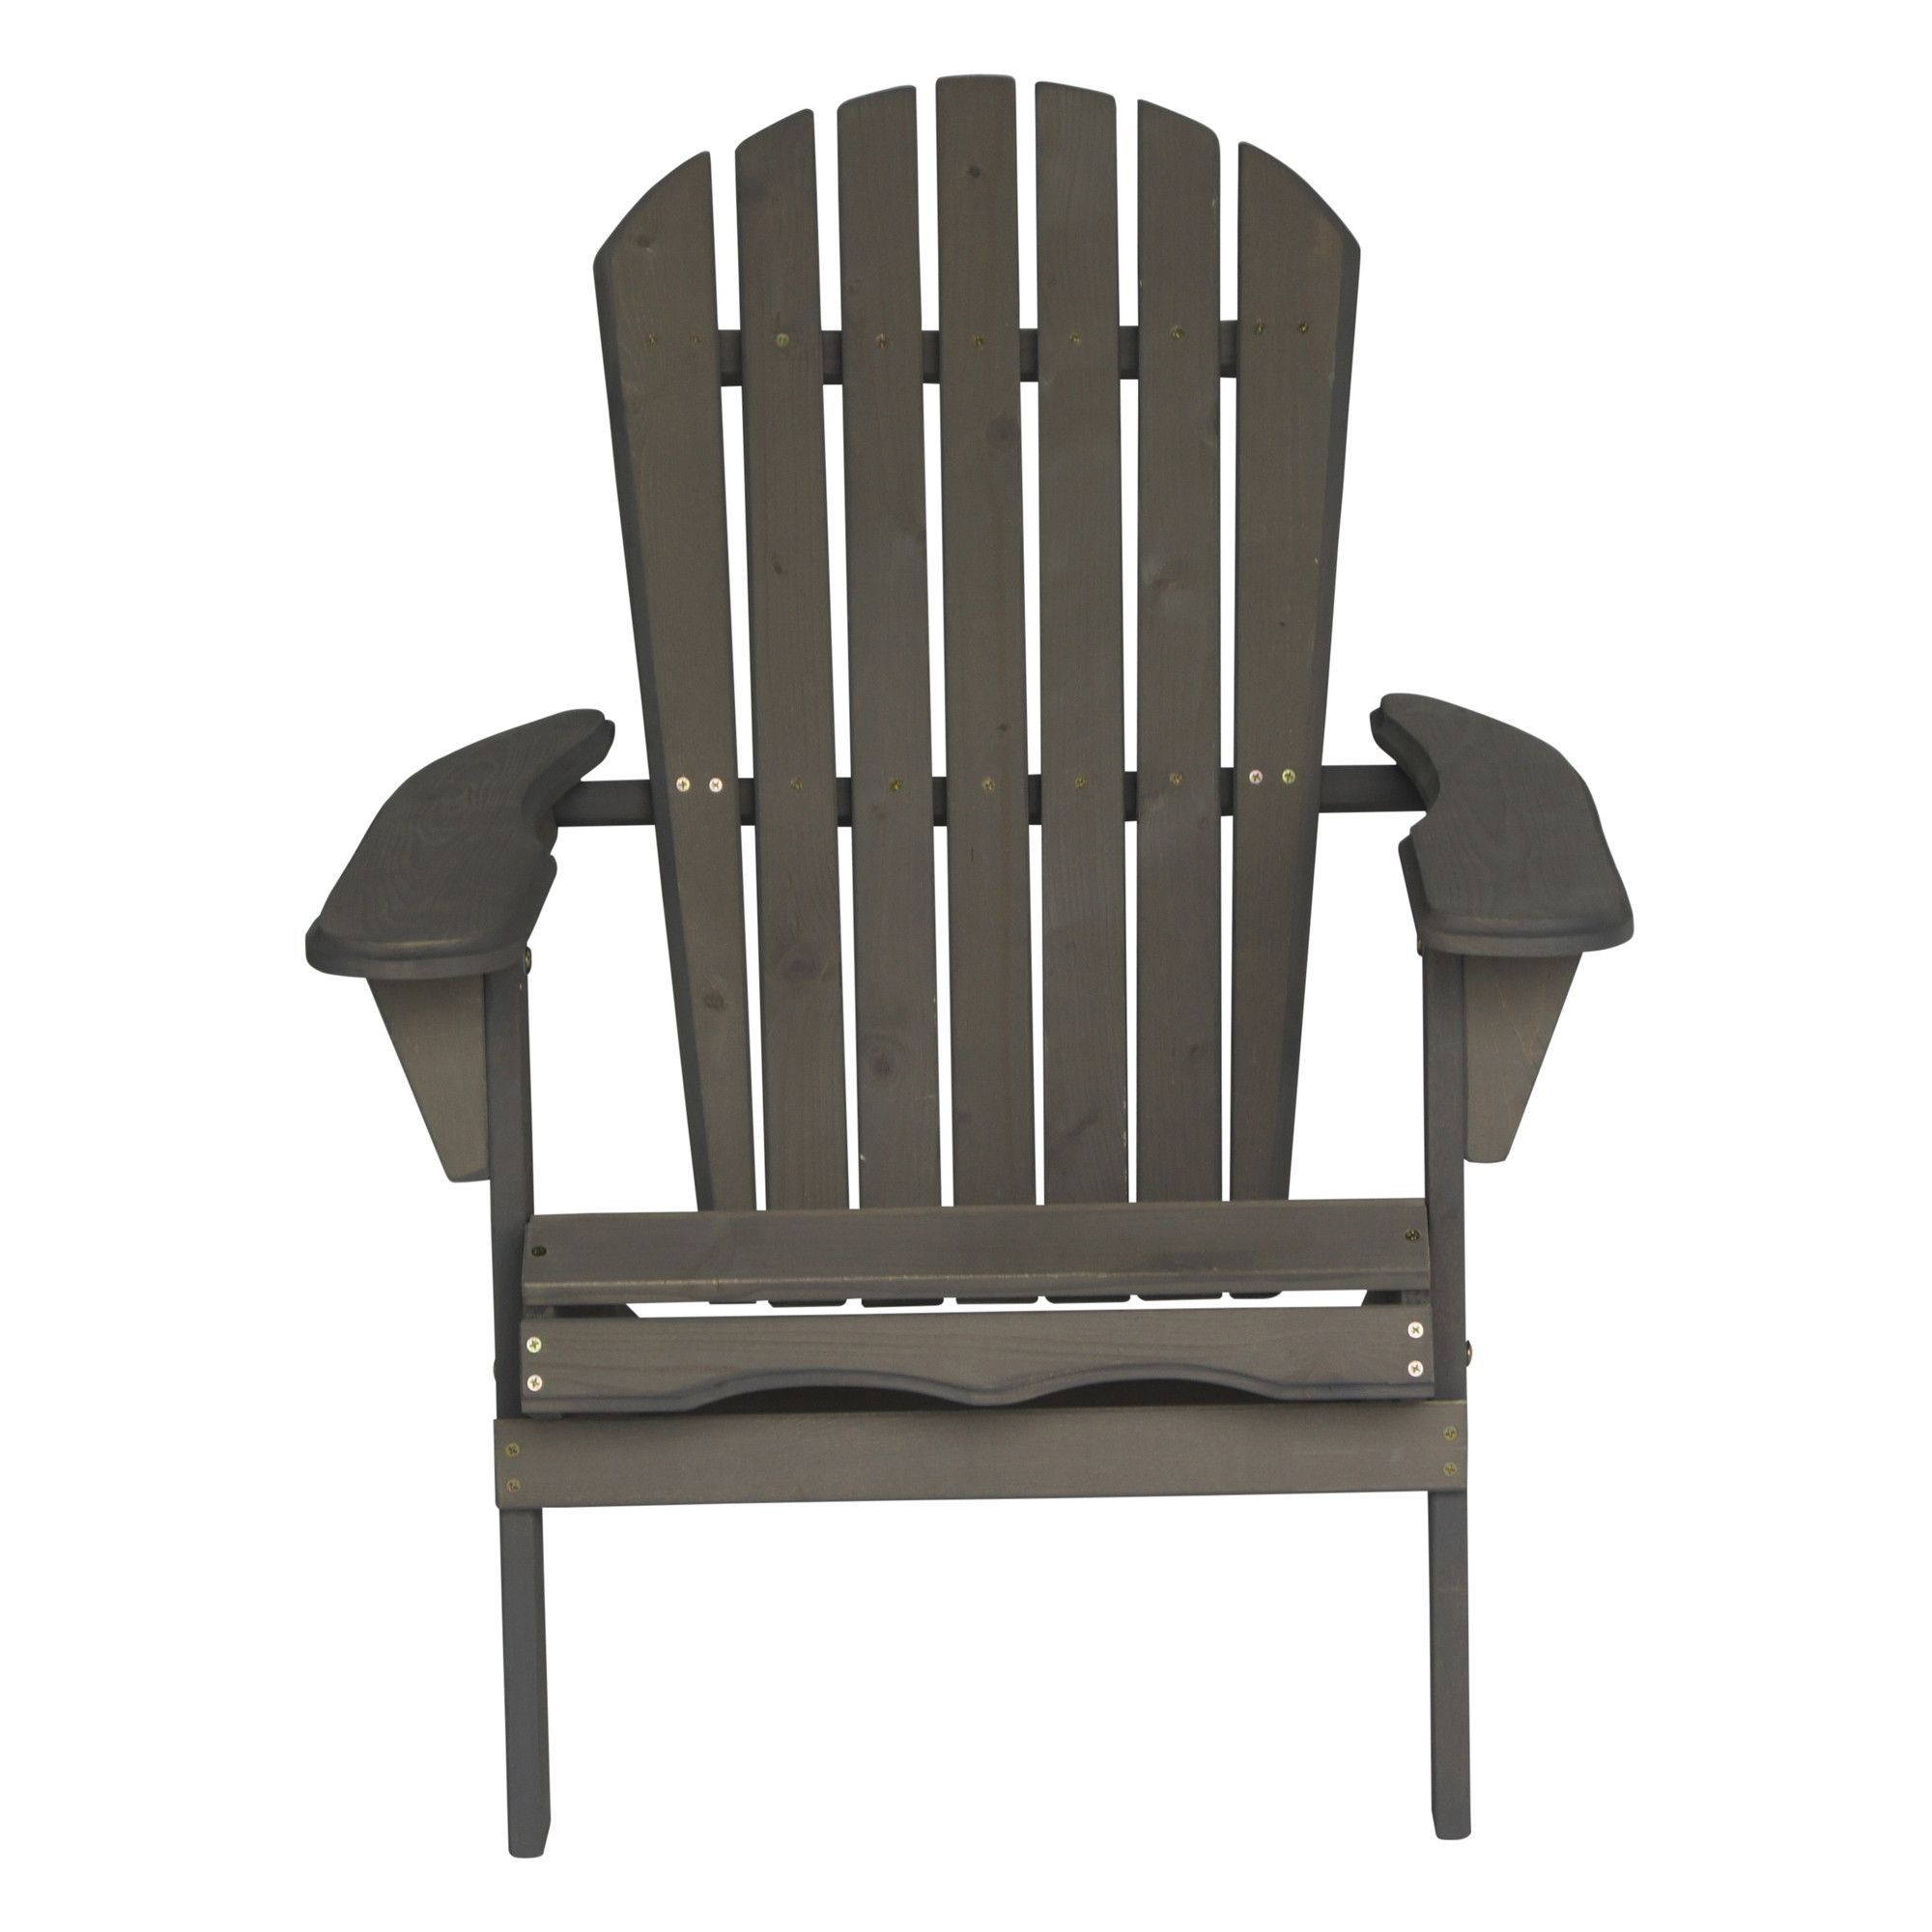 beachcrest home adirondack chair reviews wayfair lets party